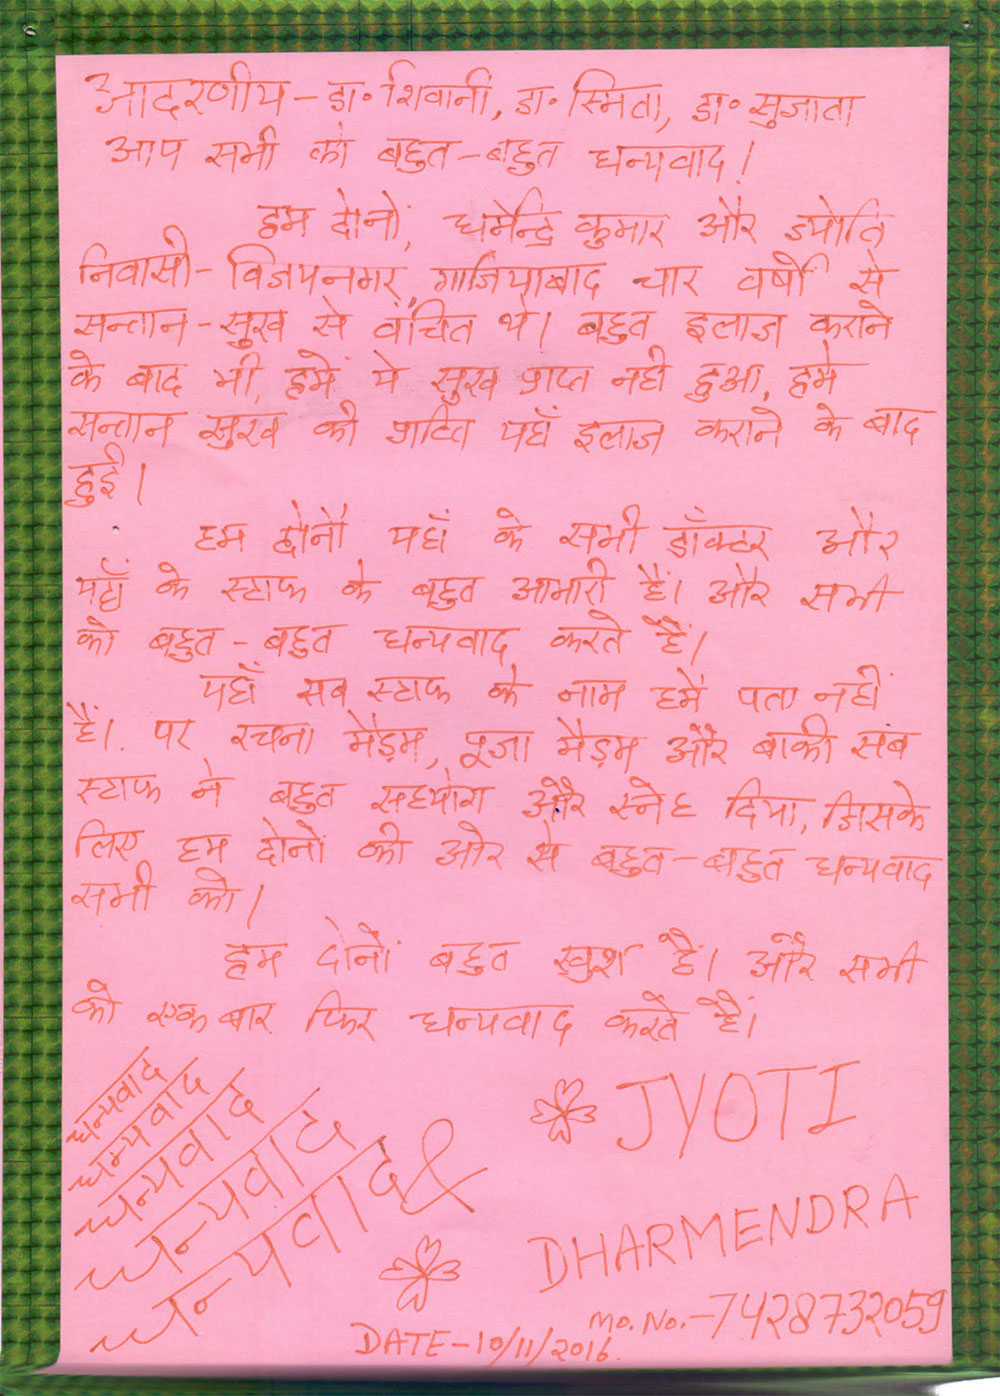 testimonial by happy parents jyoti & dharmendra